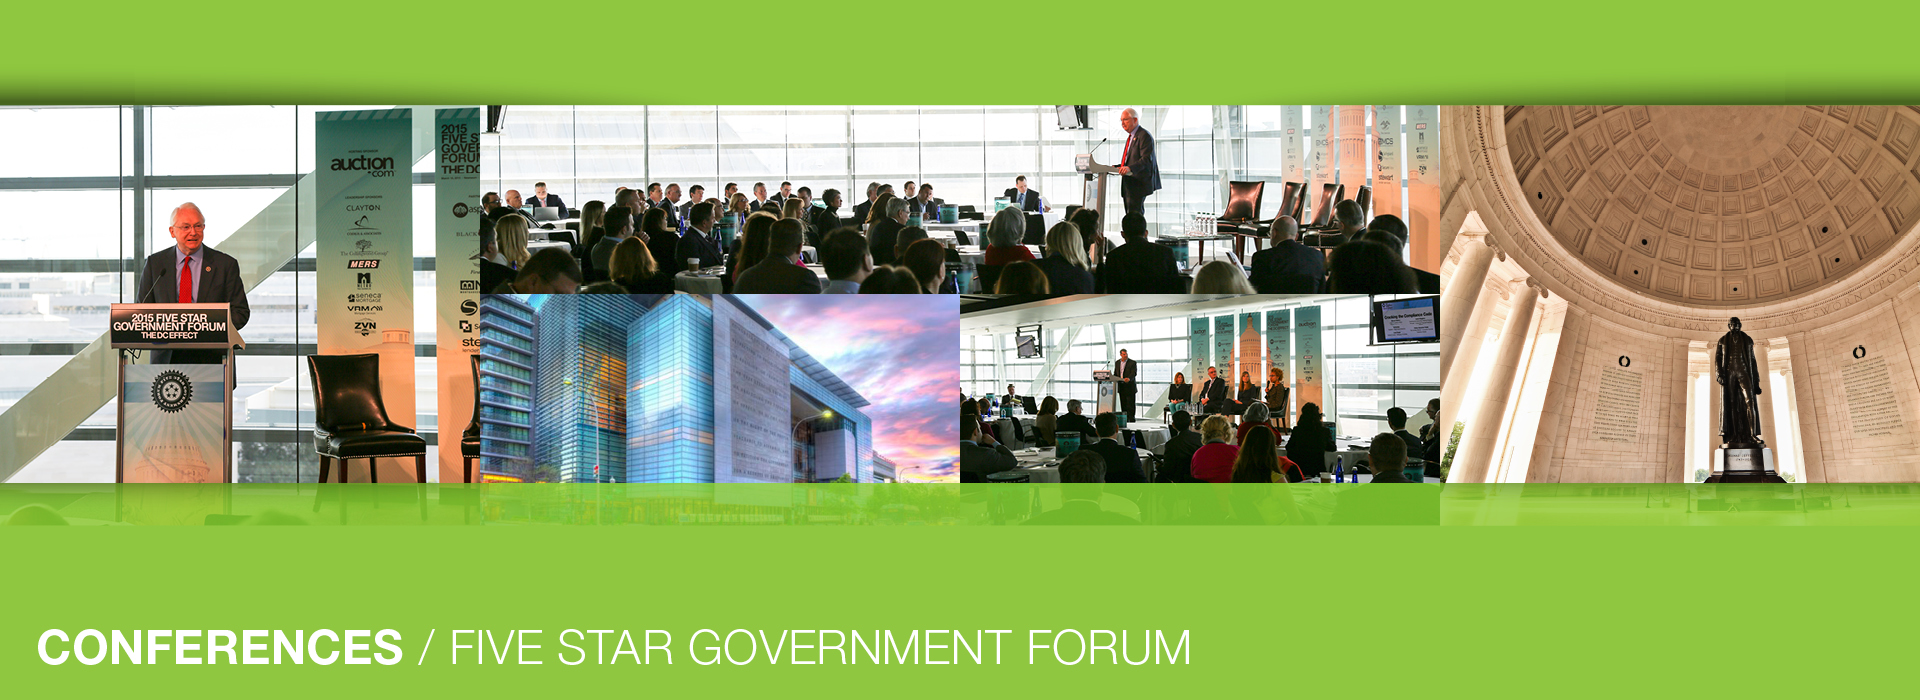 Five Star Government Forum